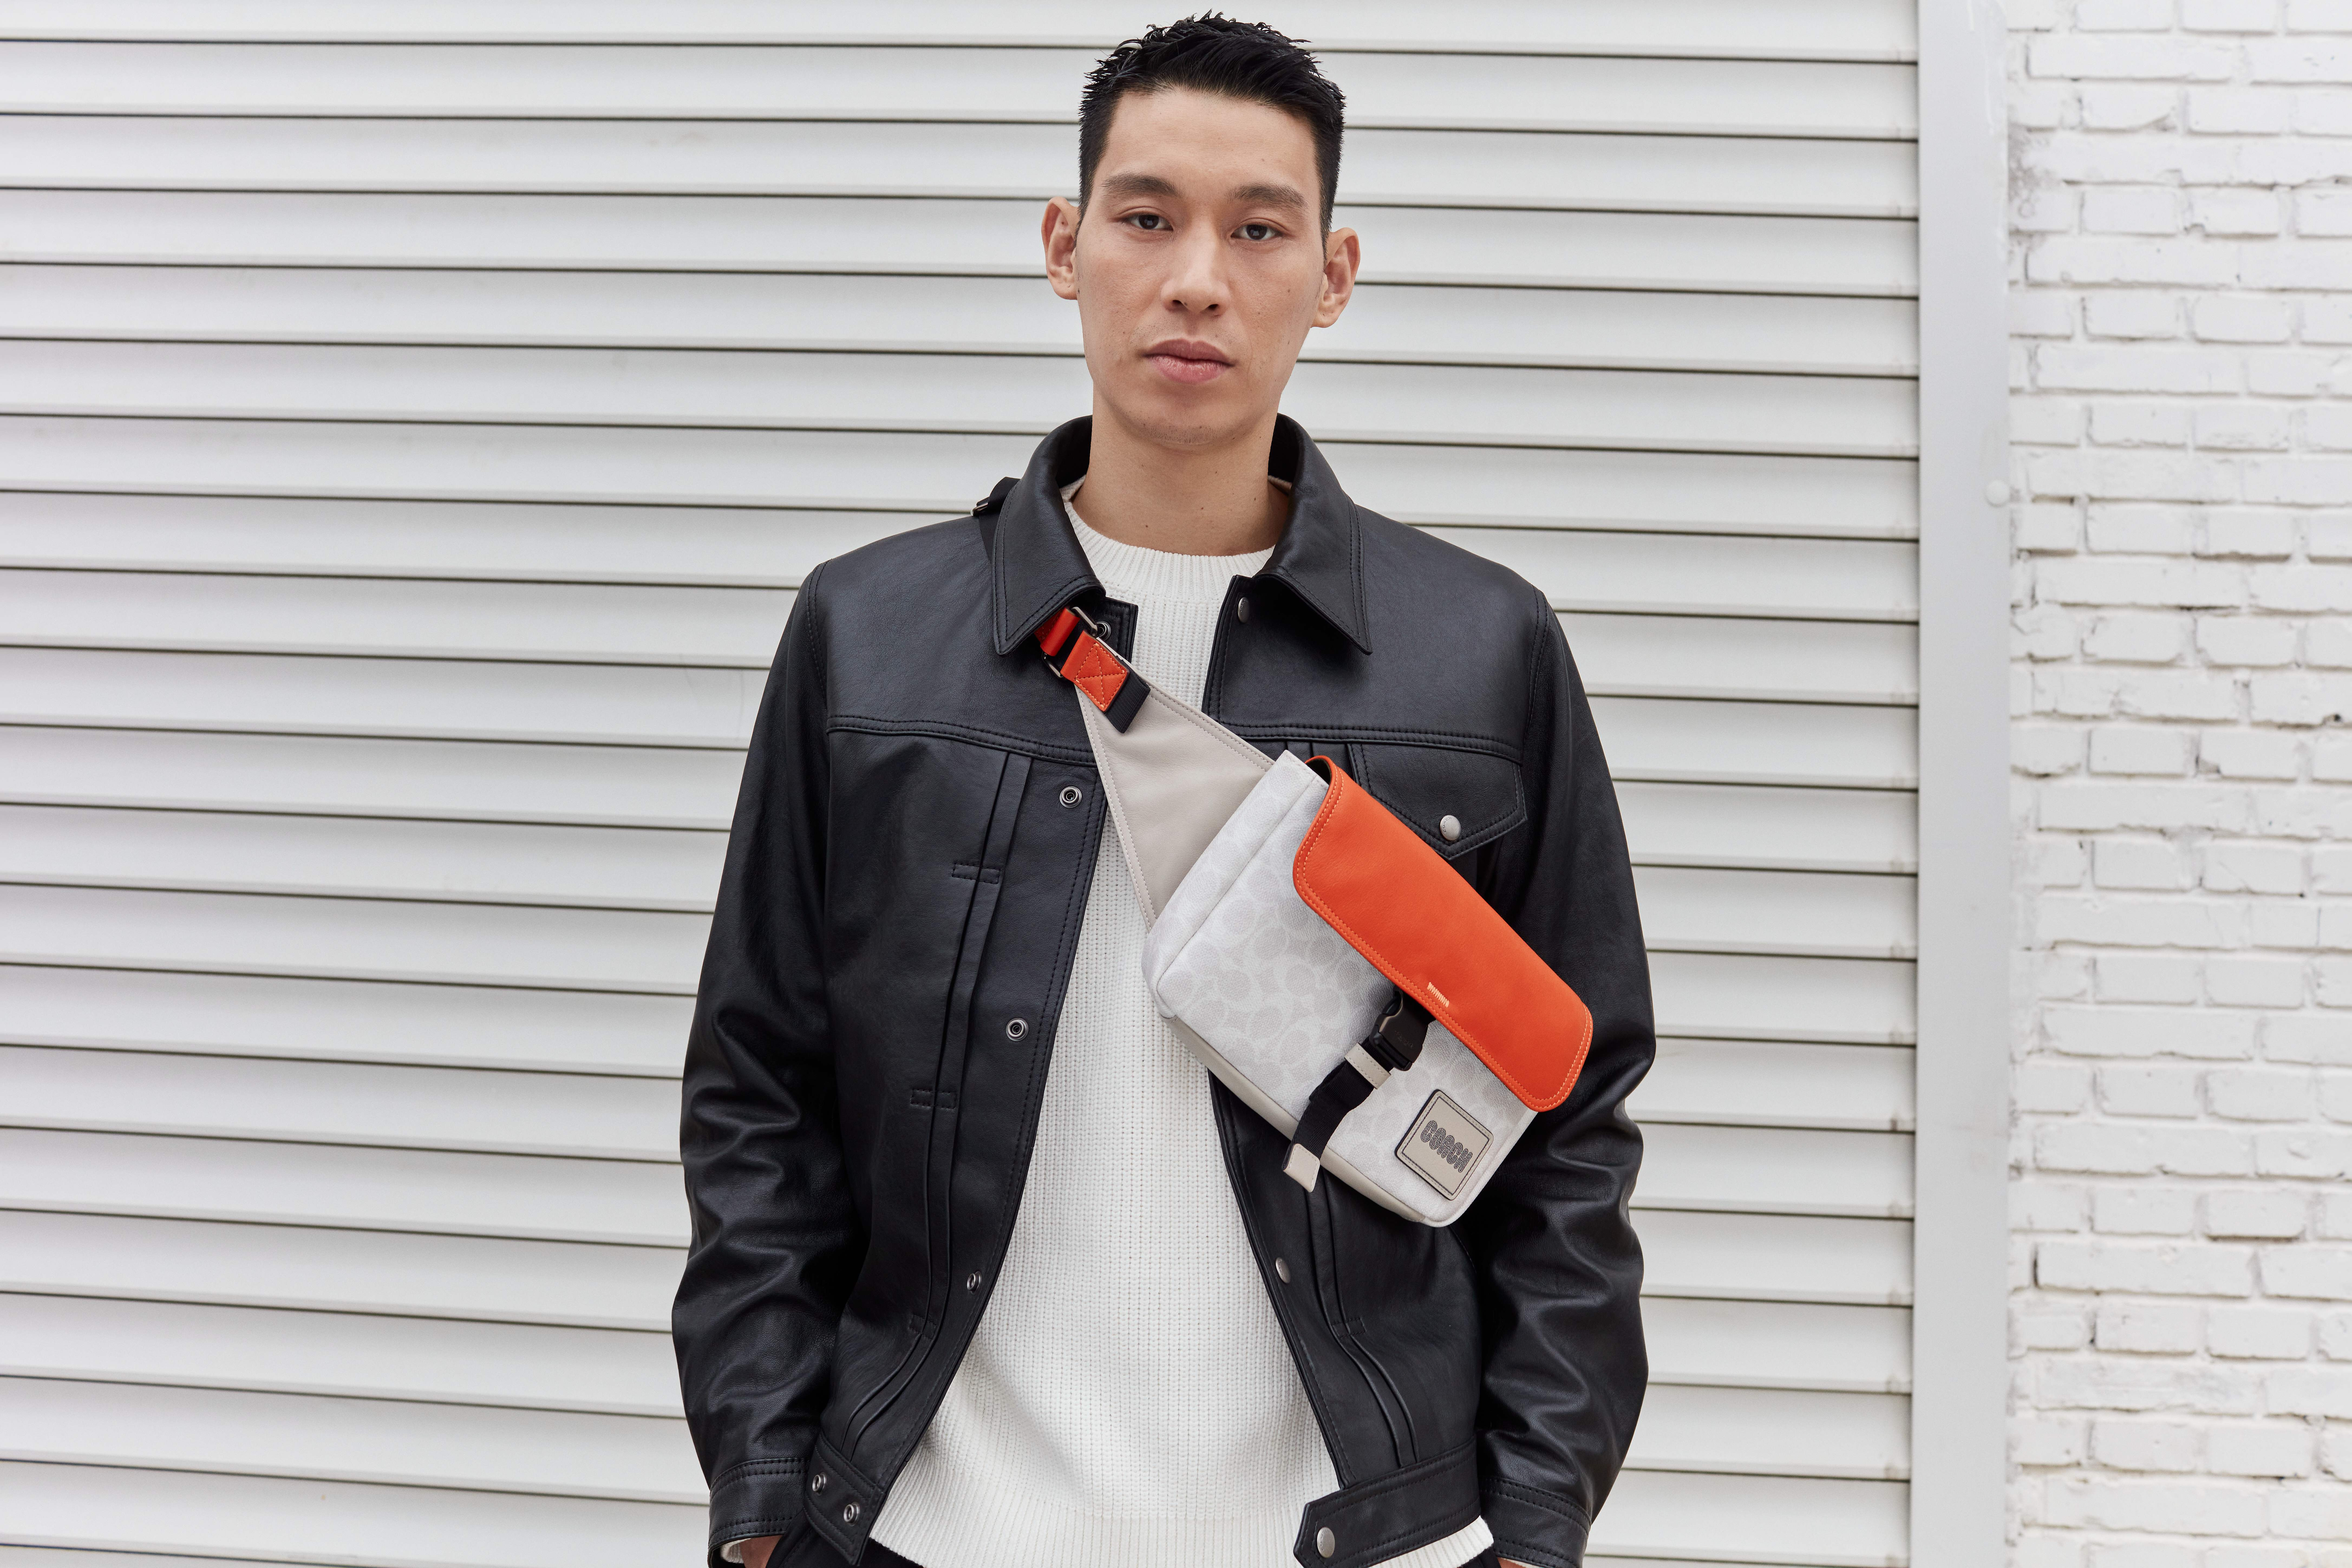 Jeremy Lin is the new face of Coach's men's business.